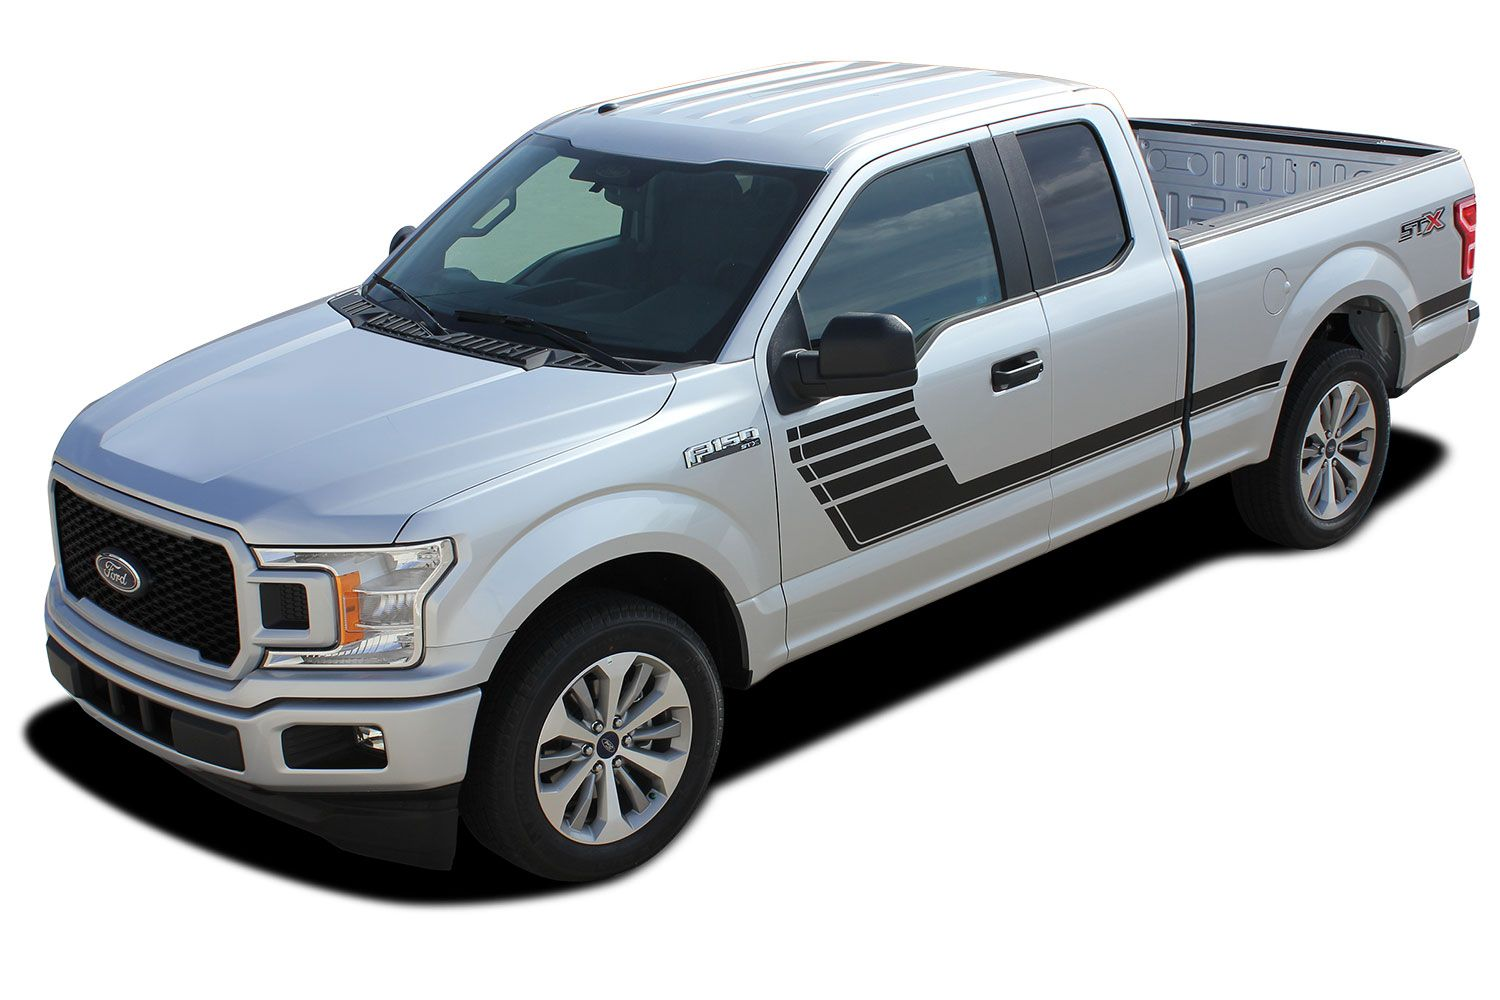 2015 2016 2017 2018 2019 ford f 150 stripes speedway special edition appearance package hockey. Black Bedroom Furniture Sets. Home Design Ideas